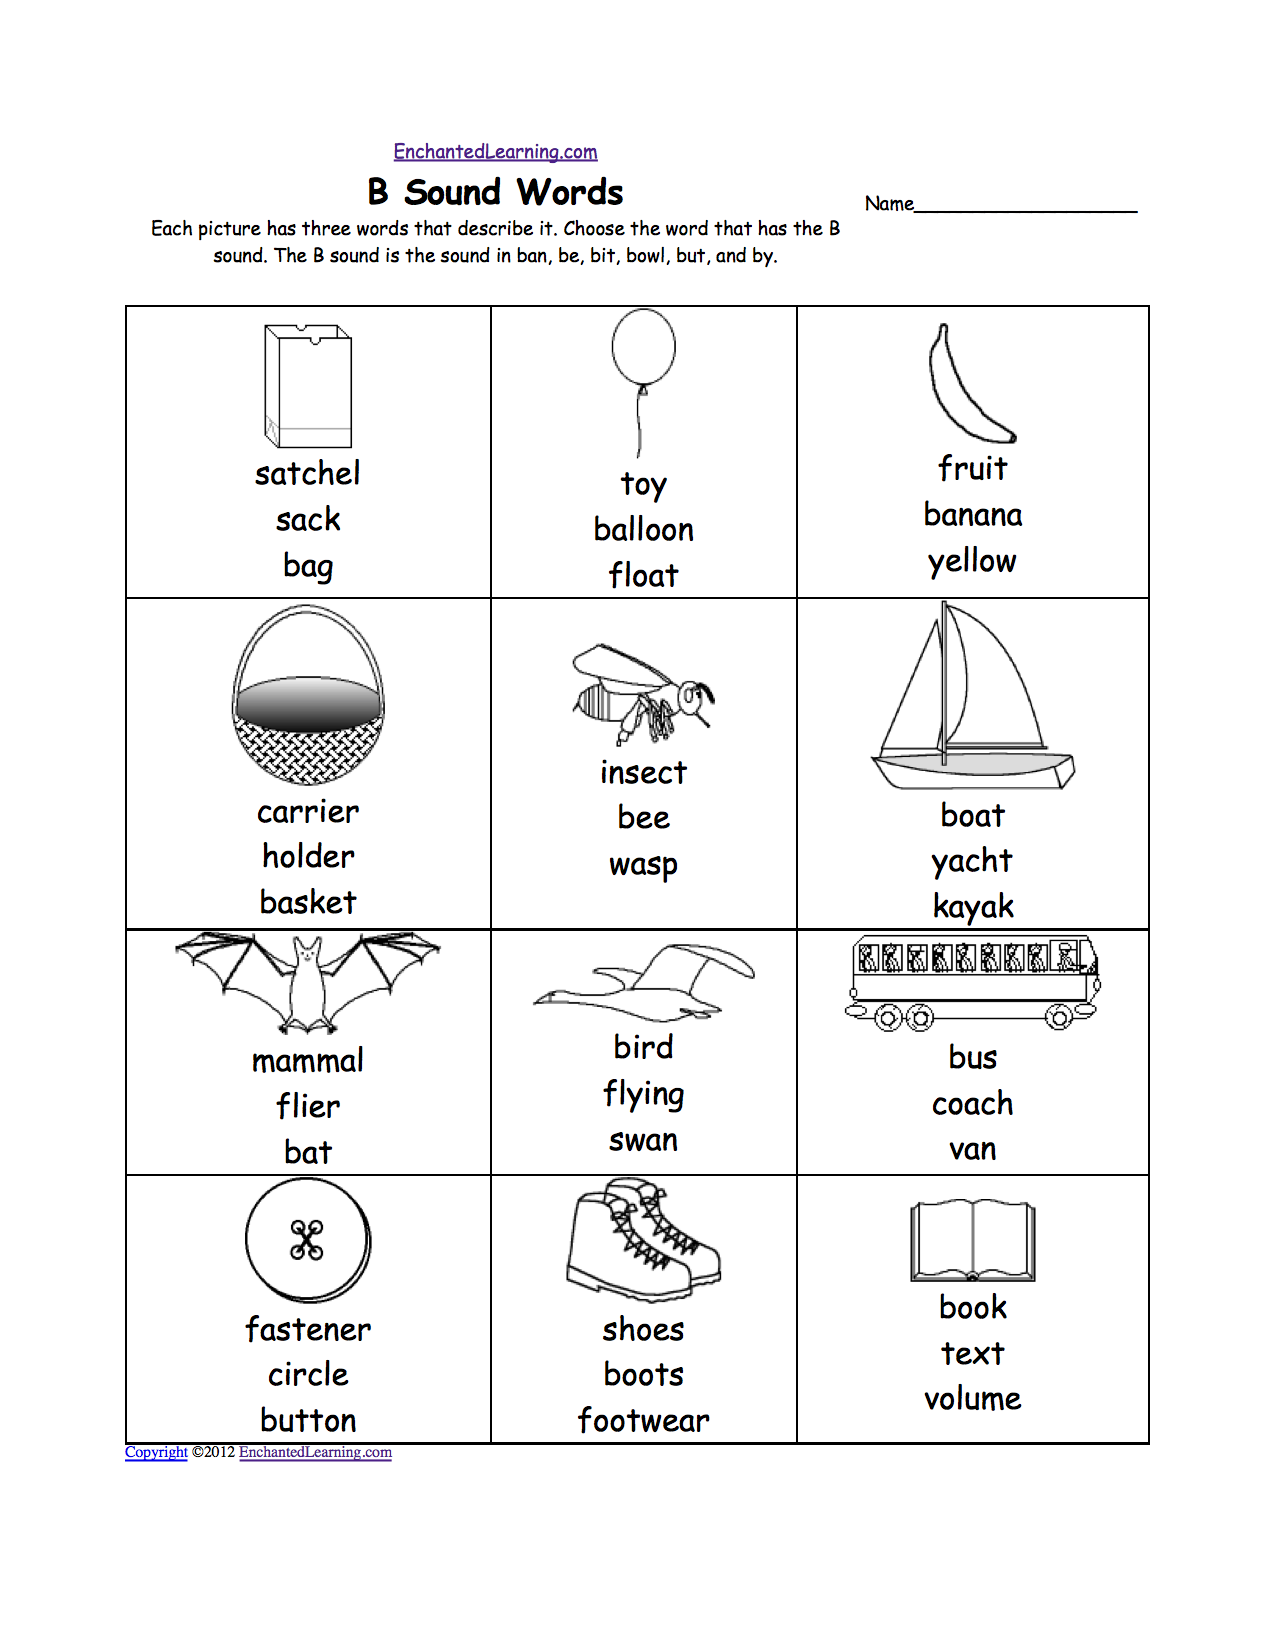 Proatmealus  Fascinating Phonics Worksheets Multiple Choice Worksheets To Print  With Luxury Quotbquot Sound Phonics Worksheet Multiple Choice Each Picture Has Three Words That Describe It Choose The Word That Has A Quotbquot Sound The Quotbquot Sound Is The Sound  With Delectable Math Counting Money Worksheets Also Urdu Alphabet Worksheet In Addition Hundreds Tens And Ones Worksheet And Ordinal Numbers In Spanish Worksheet As Well As Fill In The Blank Story Worksheets Additionally Library Worksheet From Enchantedlearningcom With Proatmealus  Luxury Phonics Worksheets Multiple Choice Worksheets To Print  With Delectable Quotbquot Sound Phonics Worksheet Multiple Choice Each Picture Has Three Words That Describe It Choose The Word That Has A Quotbquot Sound The Quotbquot Sound Is The Sound  And Fascinating Math Counting Money Worksheets Also Urdu Alphabet Worksheet In Addition Hundreds Tens And Ones Worksheet From Enchantedlearningcom